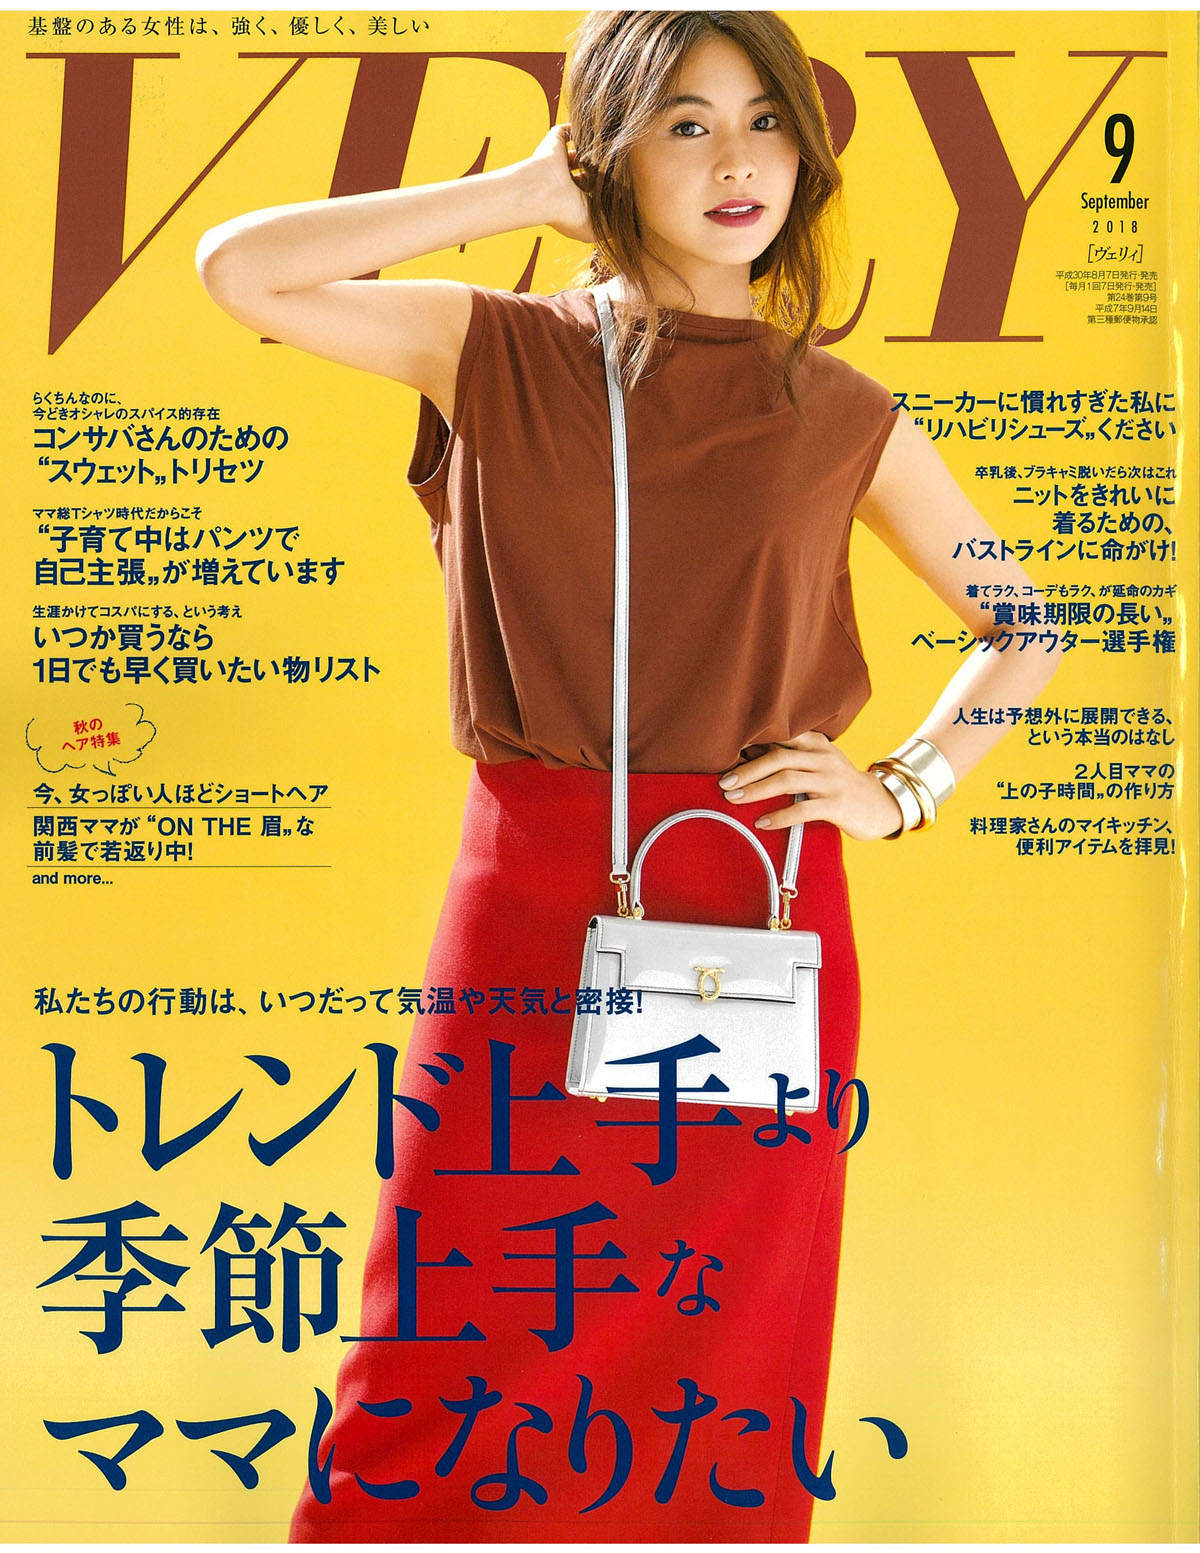 Launer London handbag is introduced in VERY magazine.